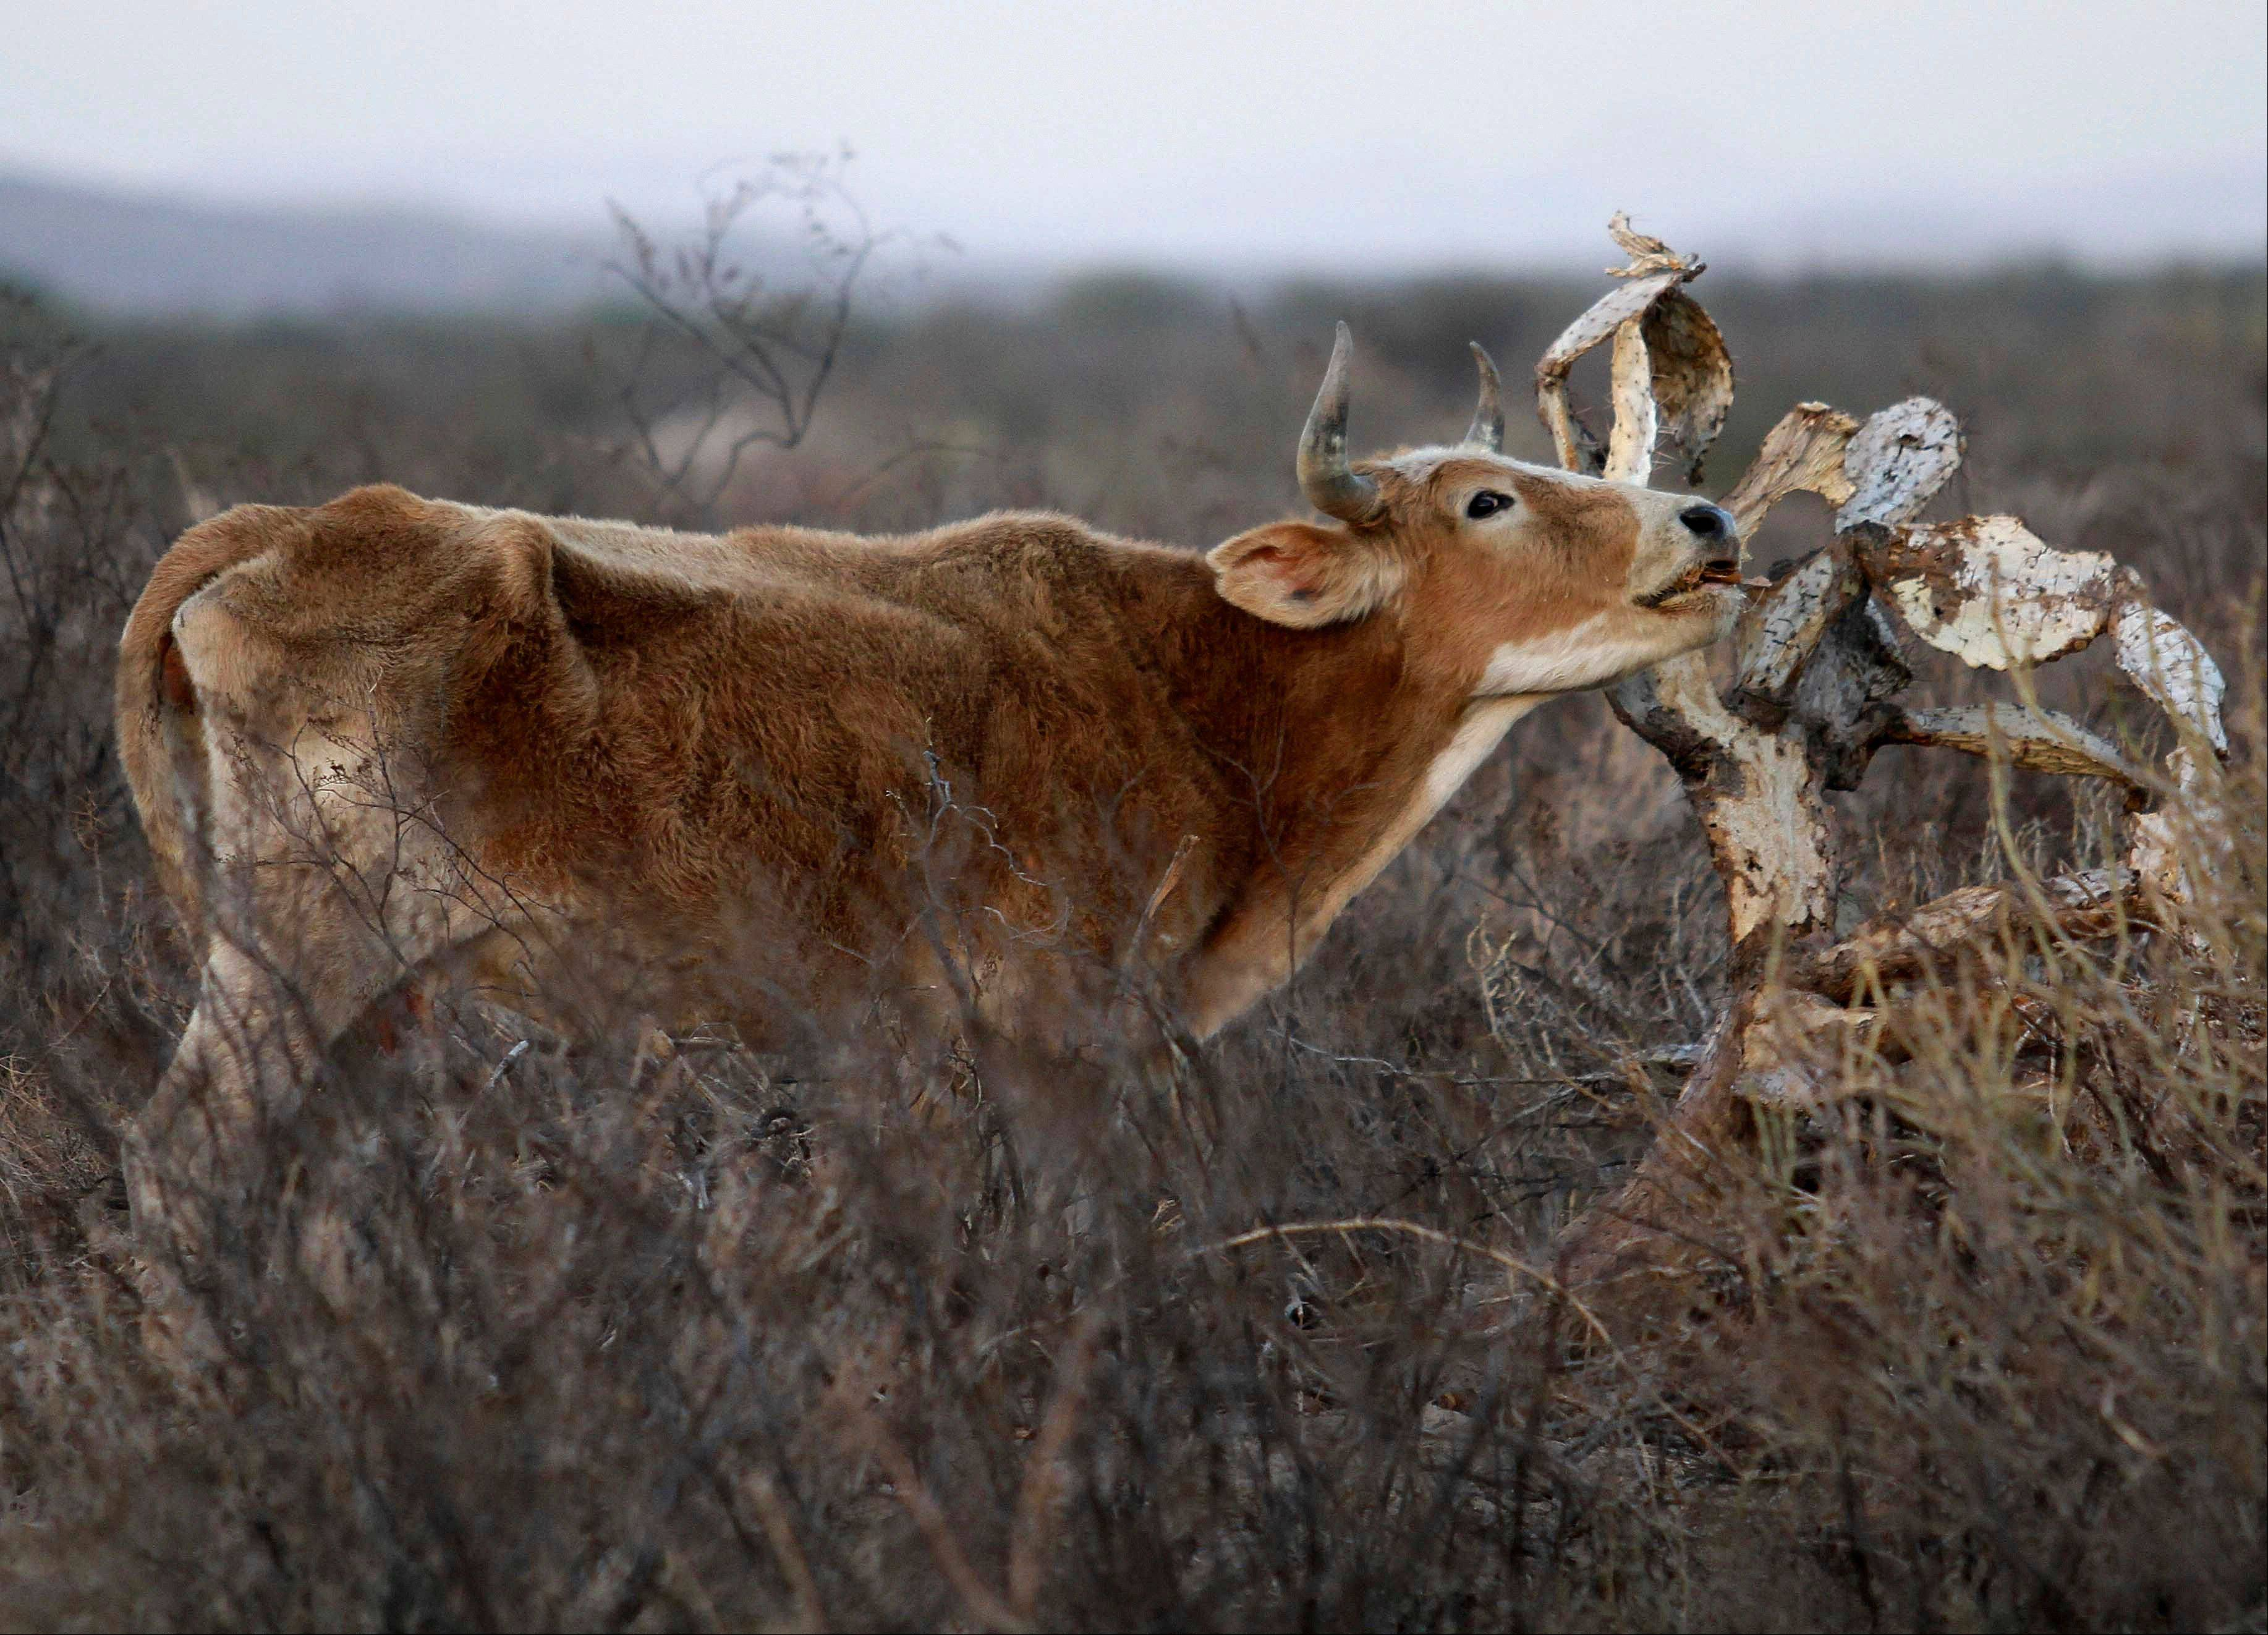 A cow tries to eat from a dried out cactus on a field near the city of Torreon, Mexico. Mexico is seeing the worst drought since 1941, when the country began recording rainfall.